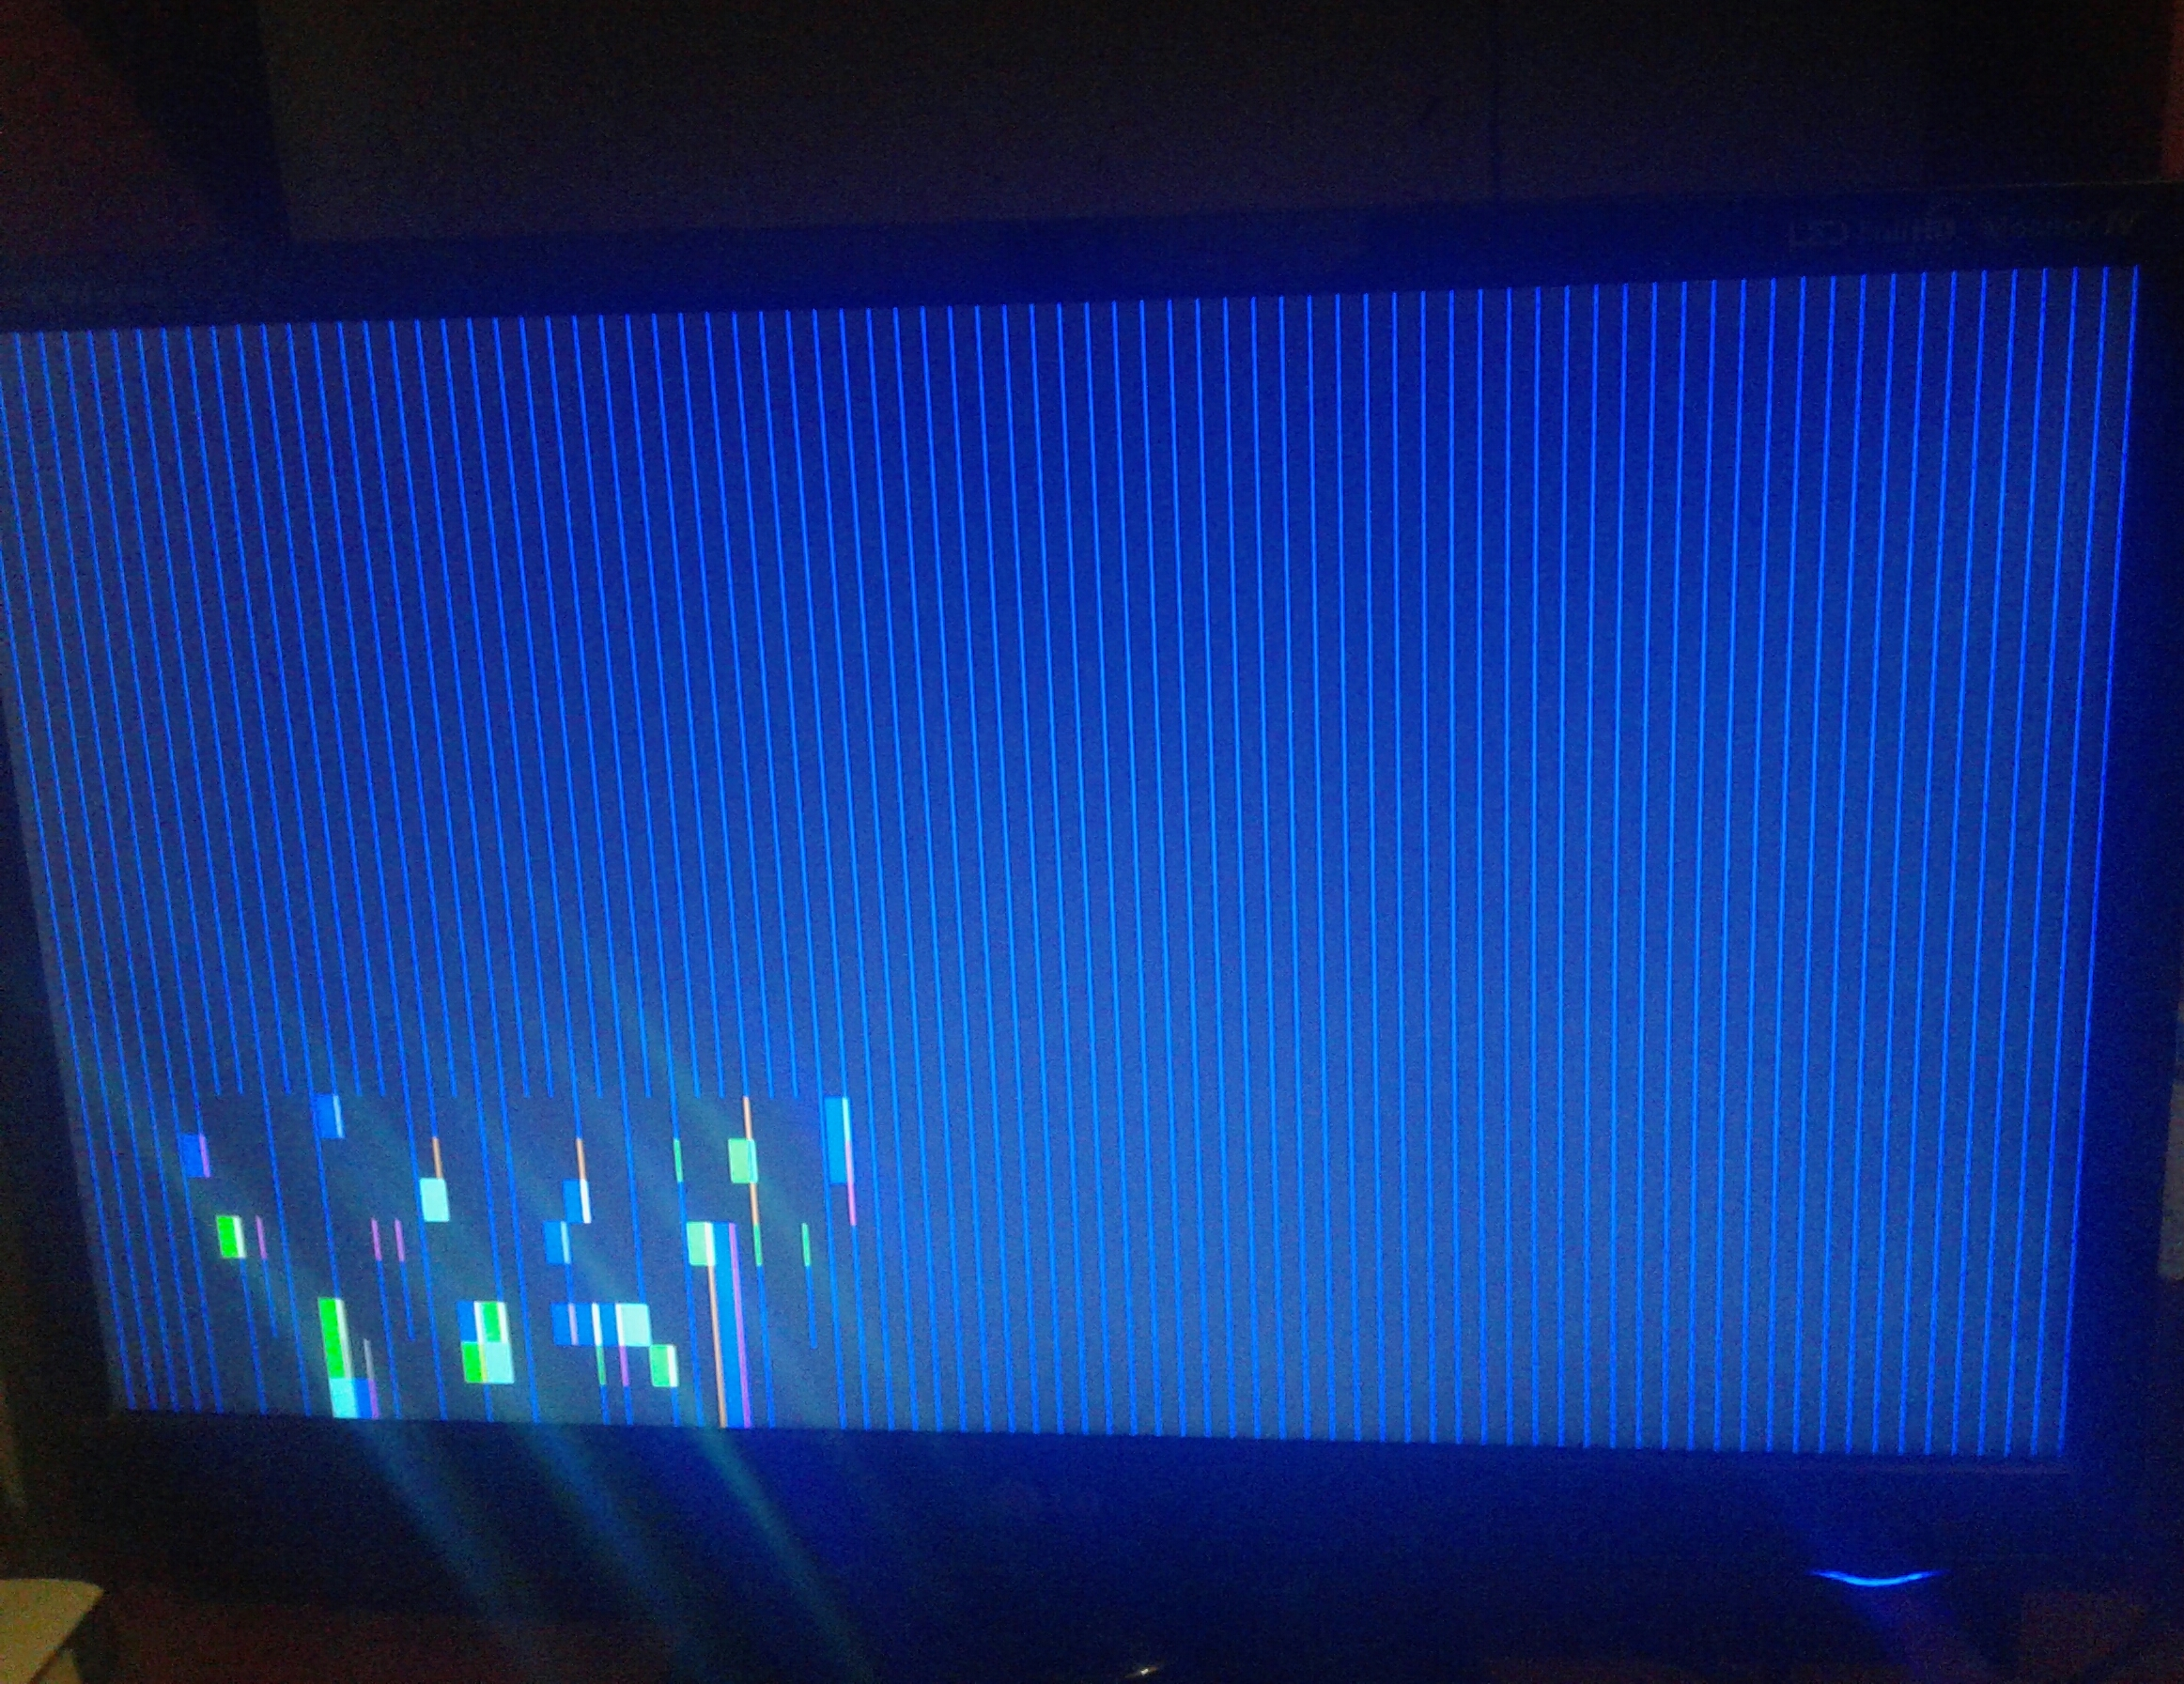 Rx470 showing blue vertical lines when starting up